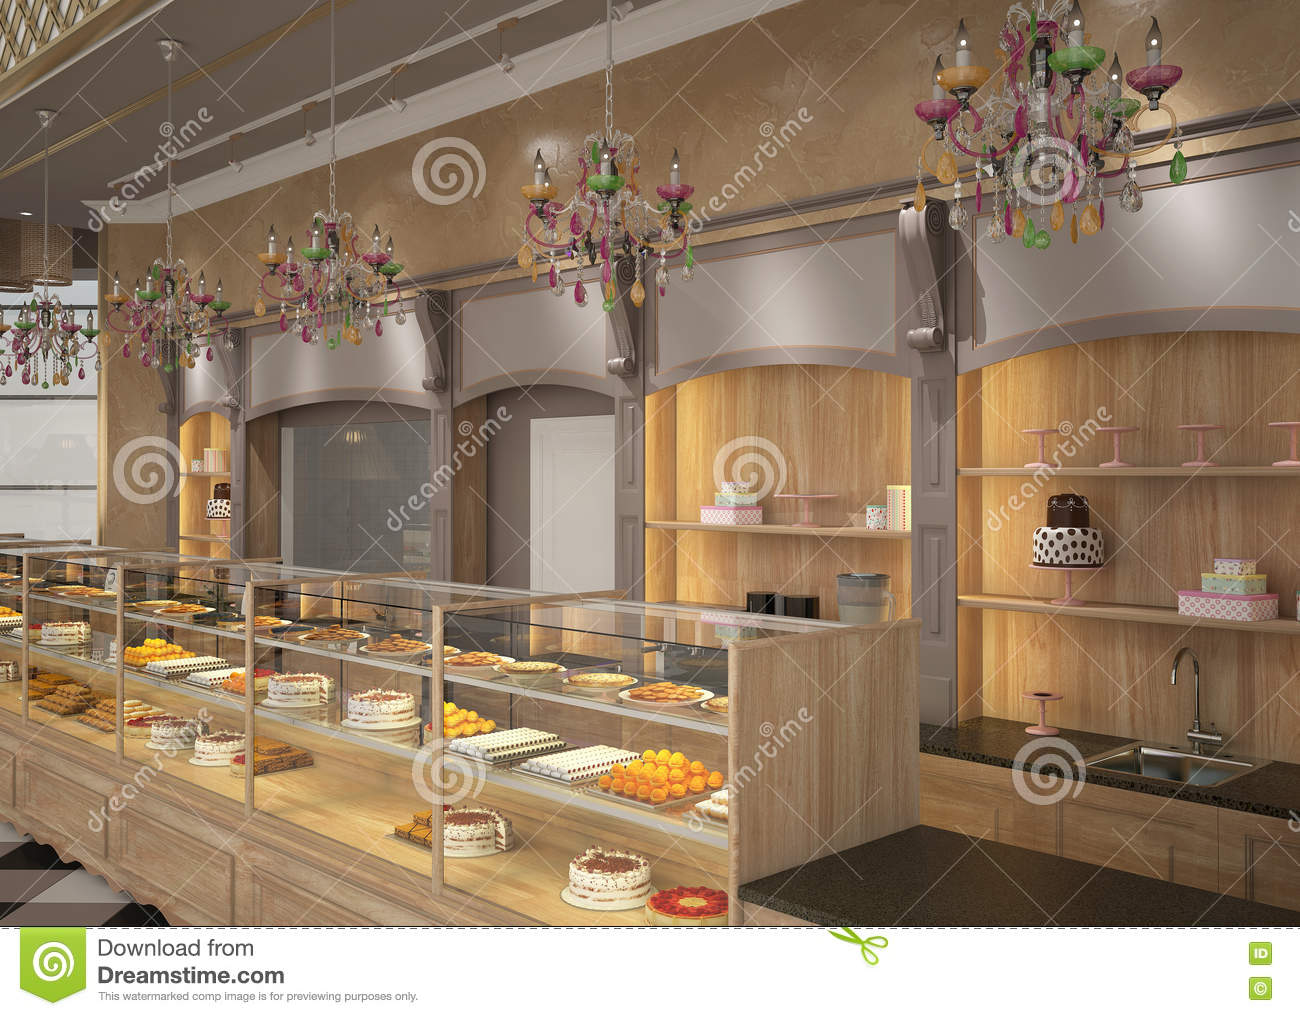 3d visualization of a pastry shop interior design stock for Bakery shop interior decoration